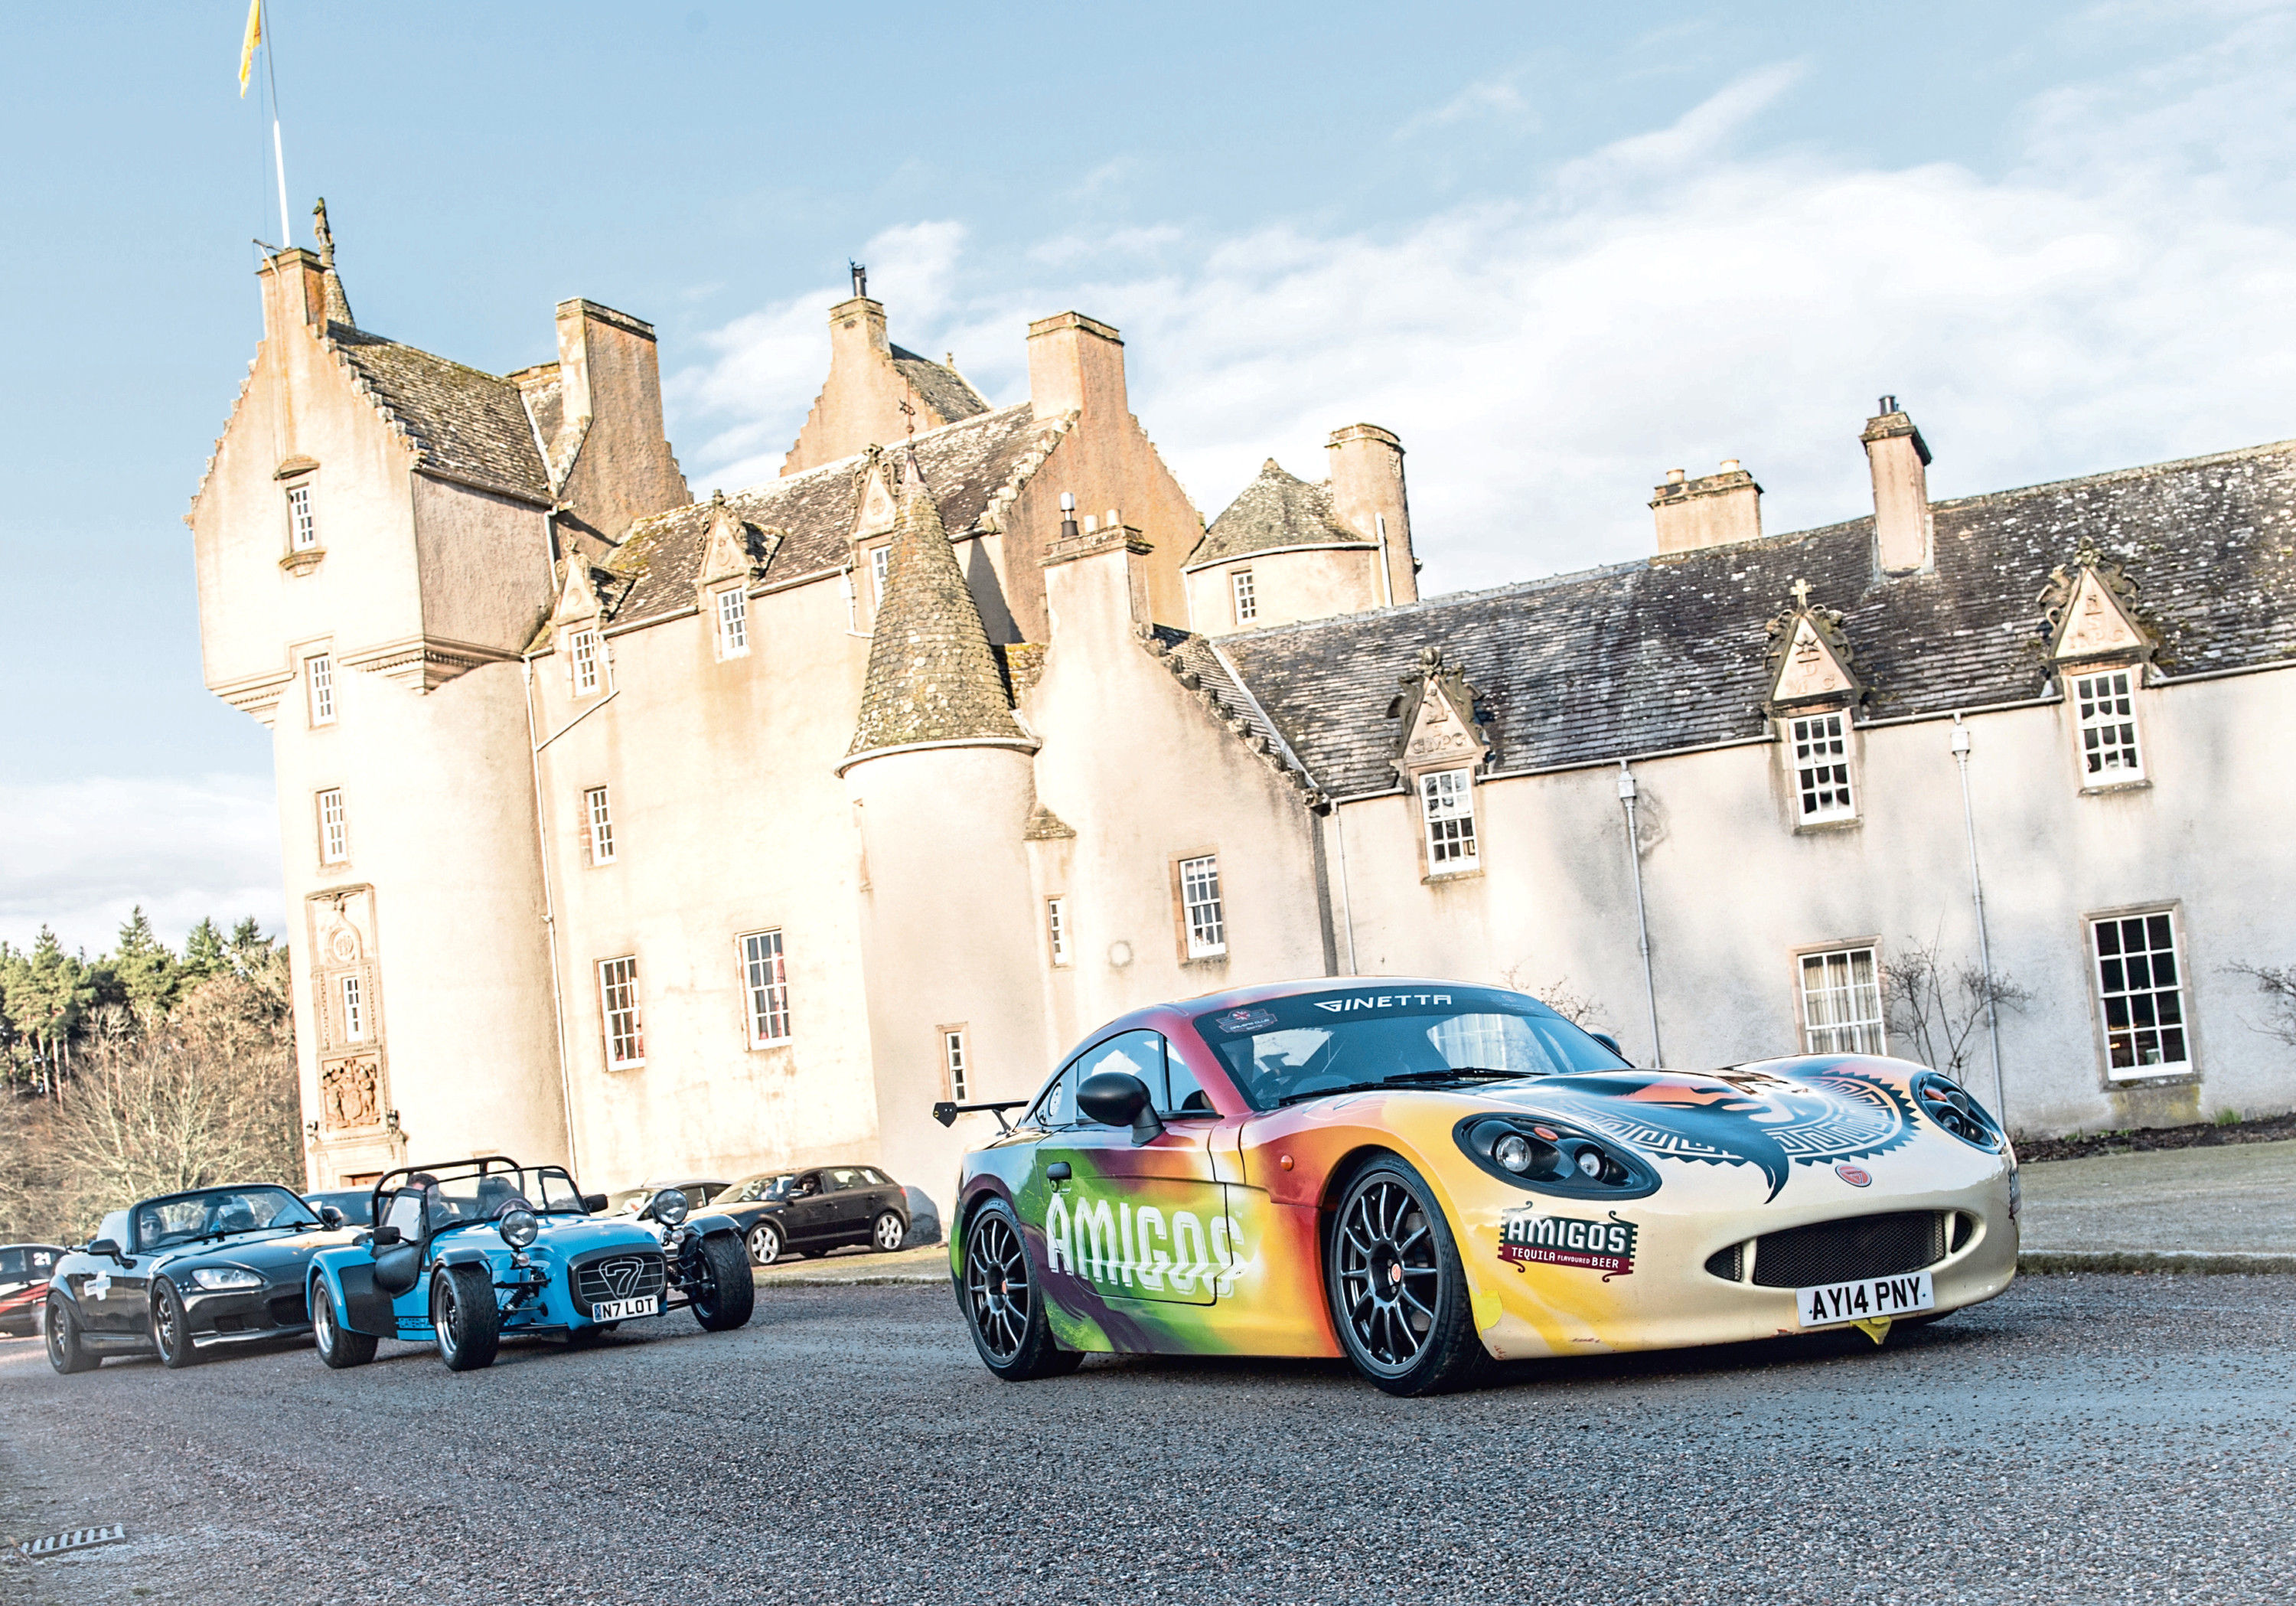 Last year's Cannonbawz run at Ballandalloch. Picture by Jason Hedges